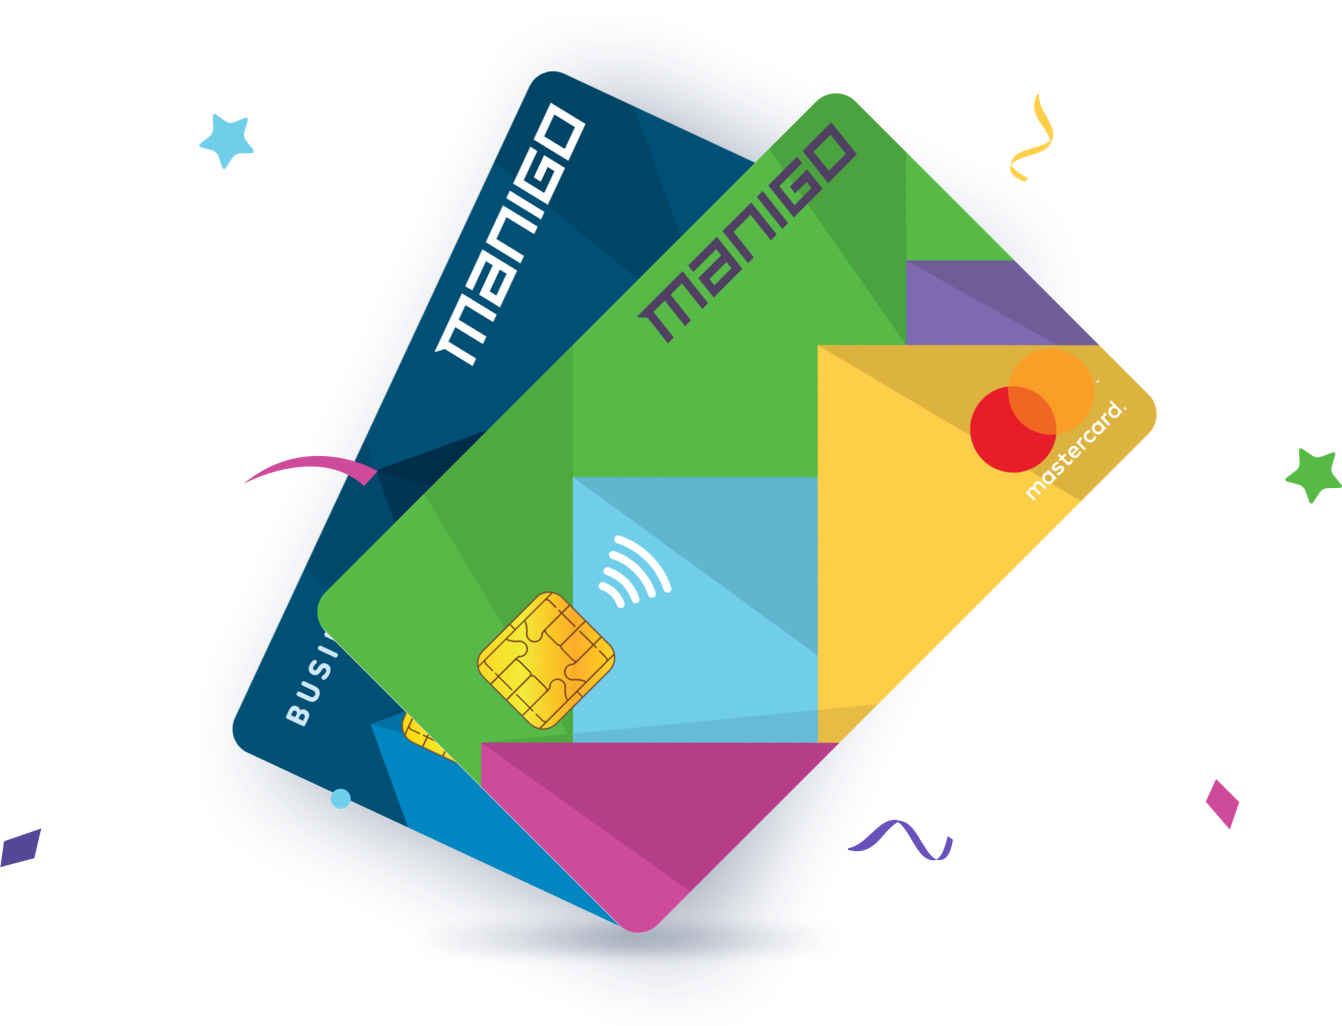 Manigo and CashFlows release turnkey payment and banking package on Mastercard network